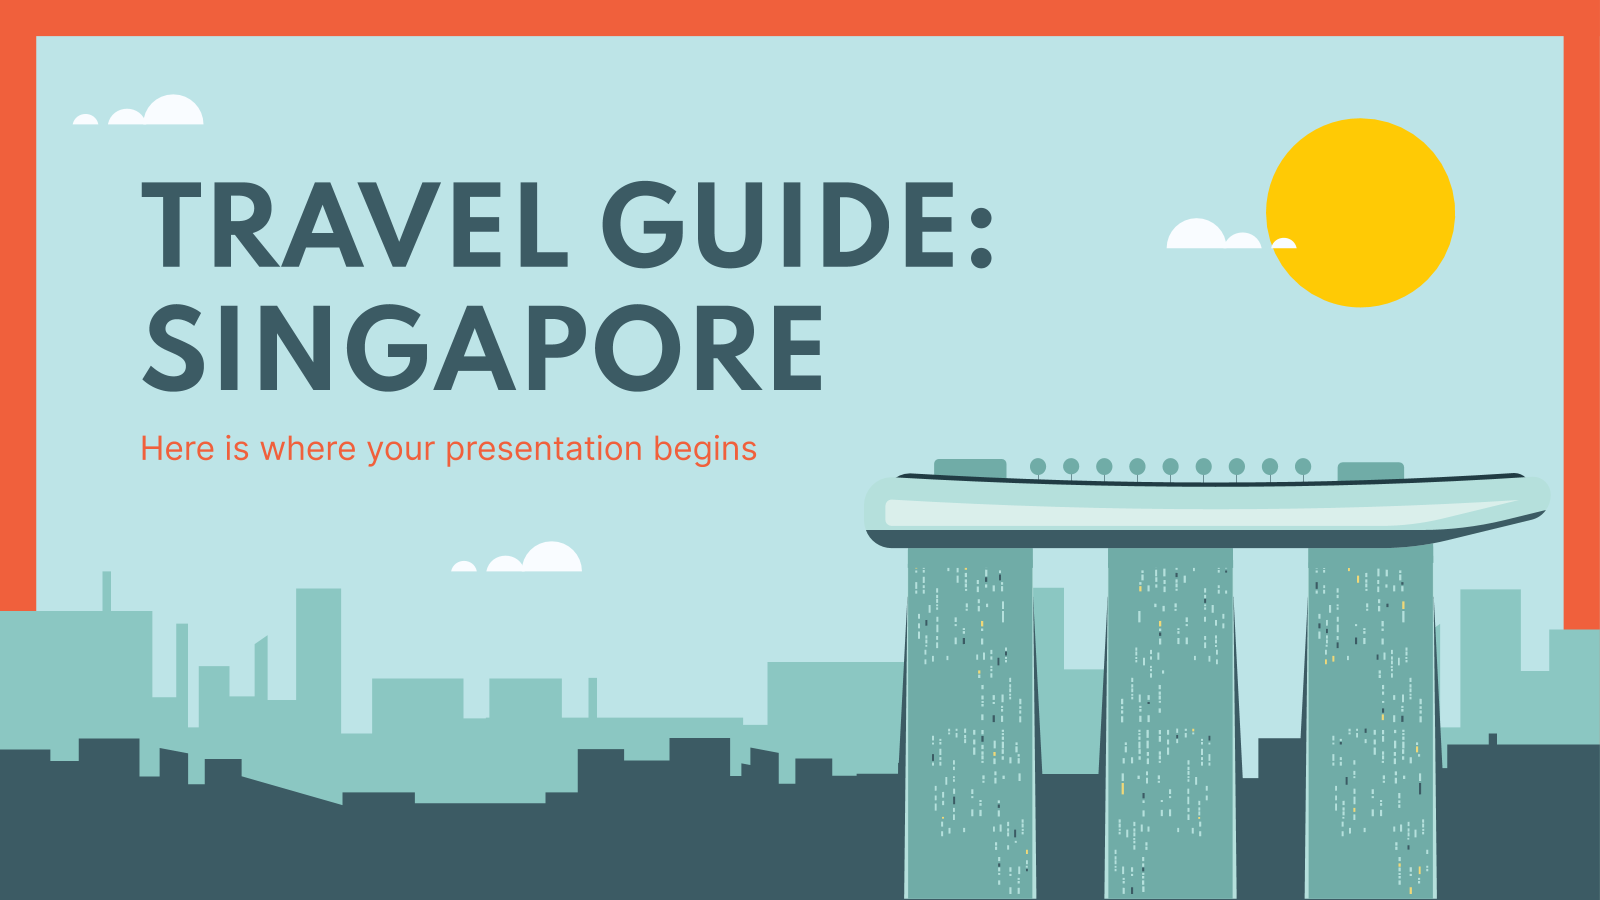 Travel Guide: Singapore presentation template